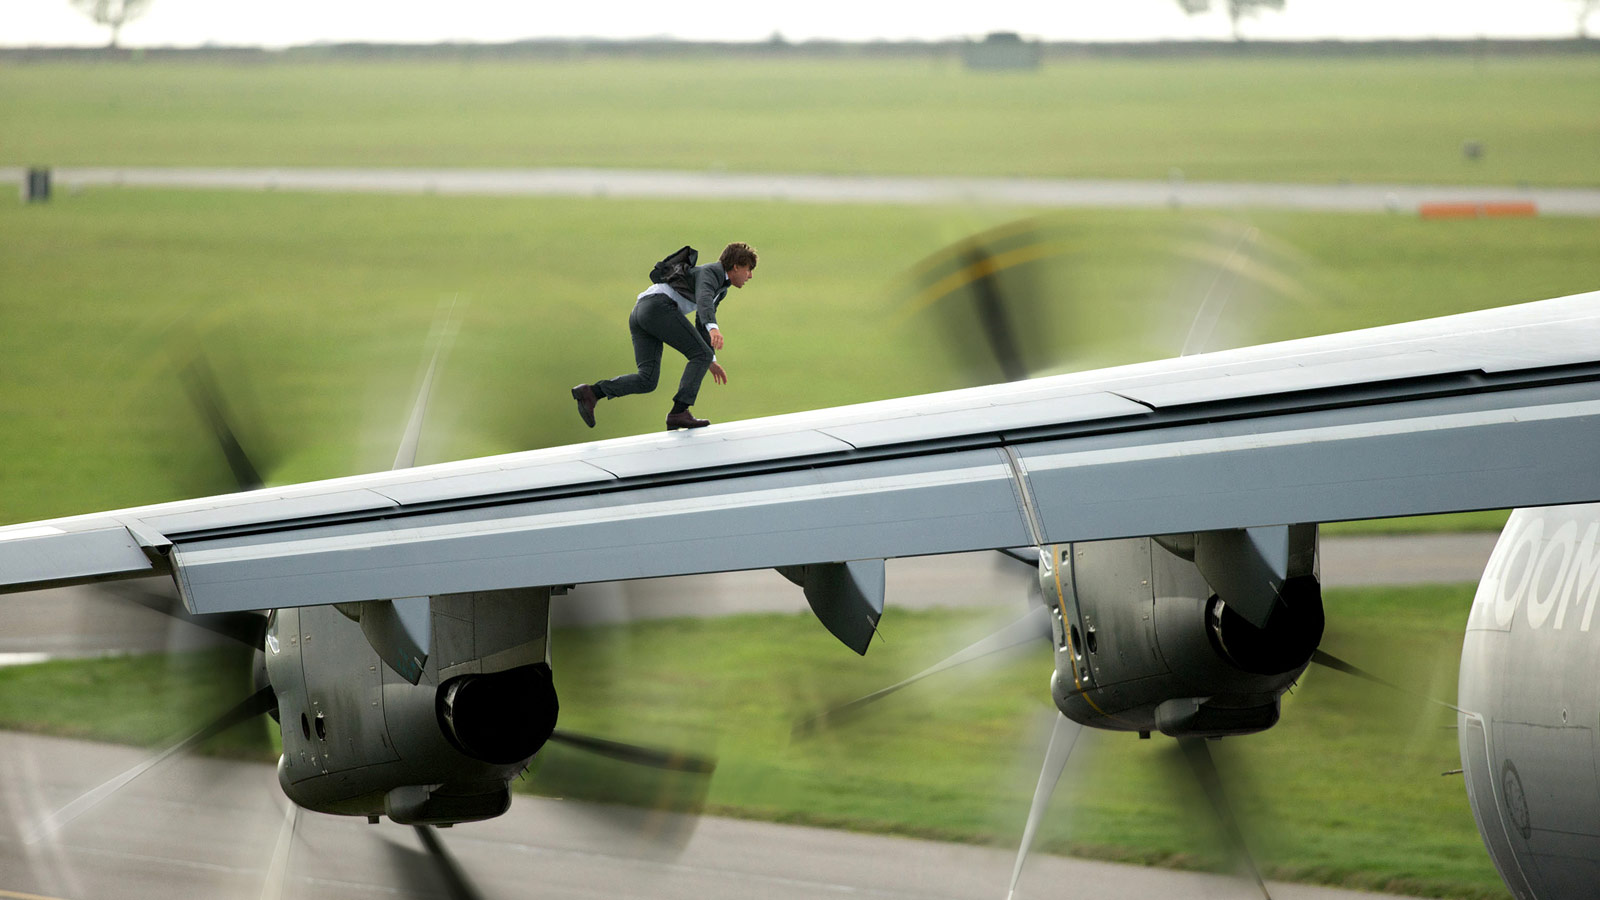 Tom_Cruise_Mission_Impossible_5_1600x1200.jpg